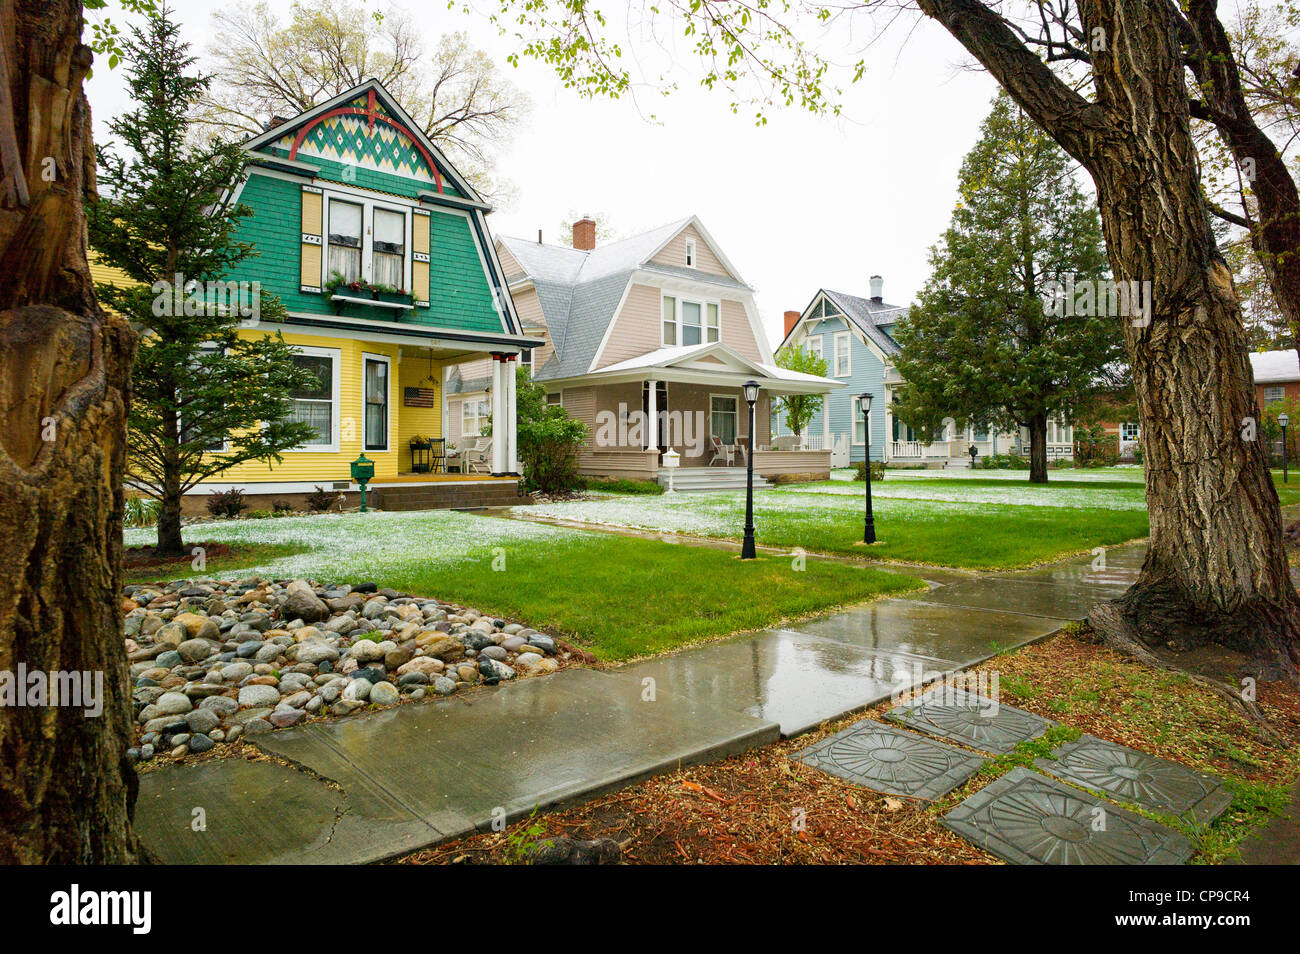 Victorian home, early May snowstorm, historic downtown district, small mountain town of Salida, Colorado, USA - Stock Image